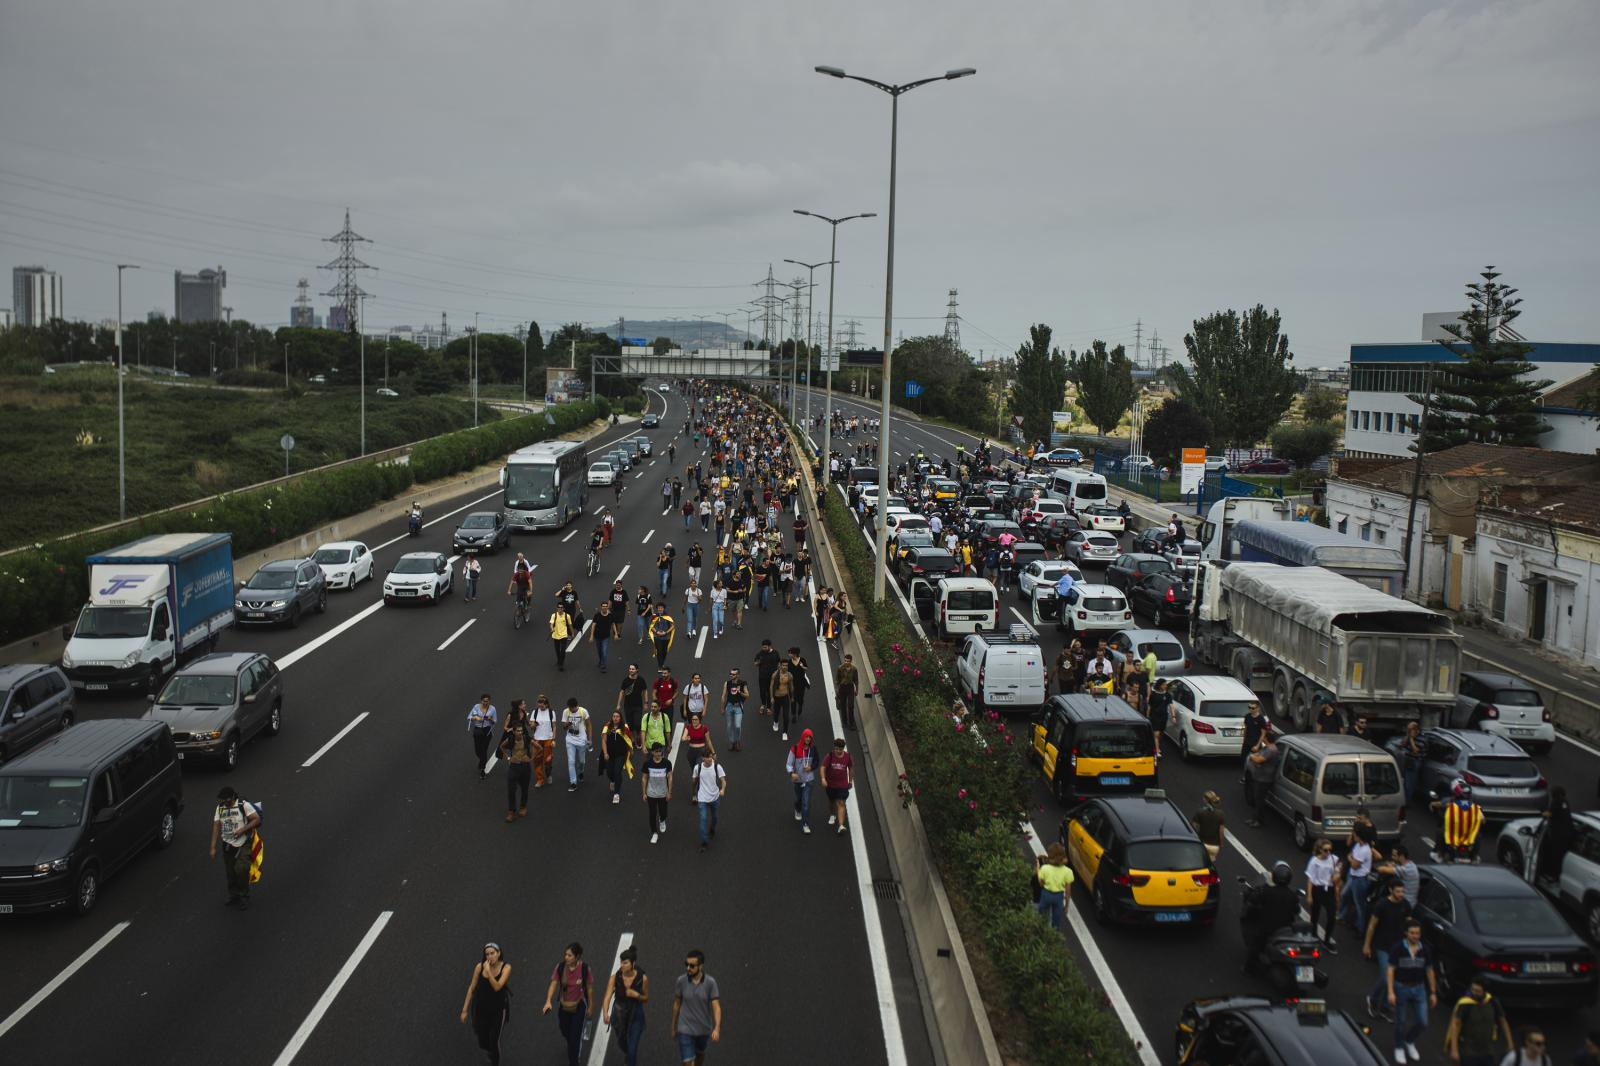 People walking on the highway to head to the airport. (October 14,2019. Barcelona, Spain)